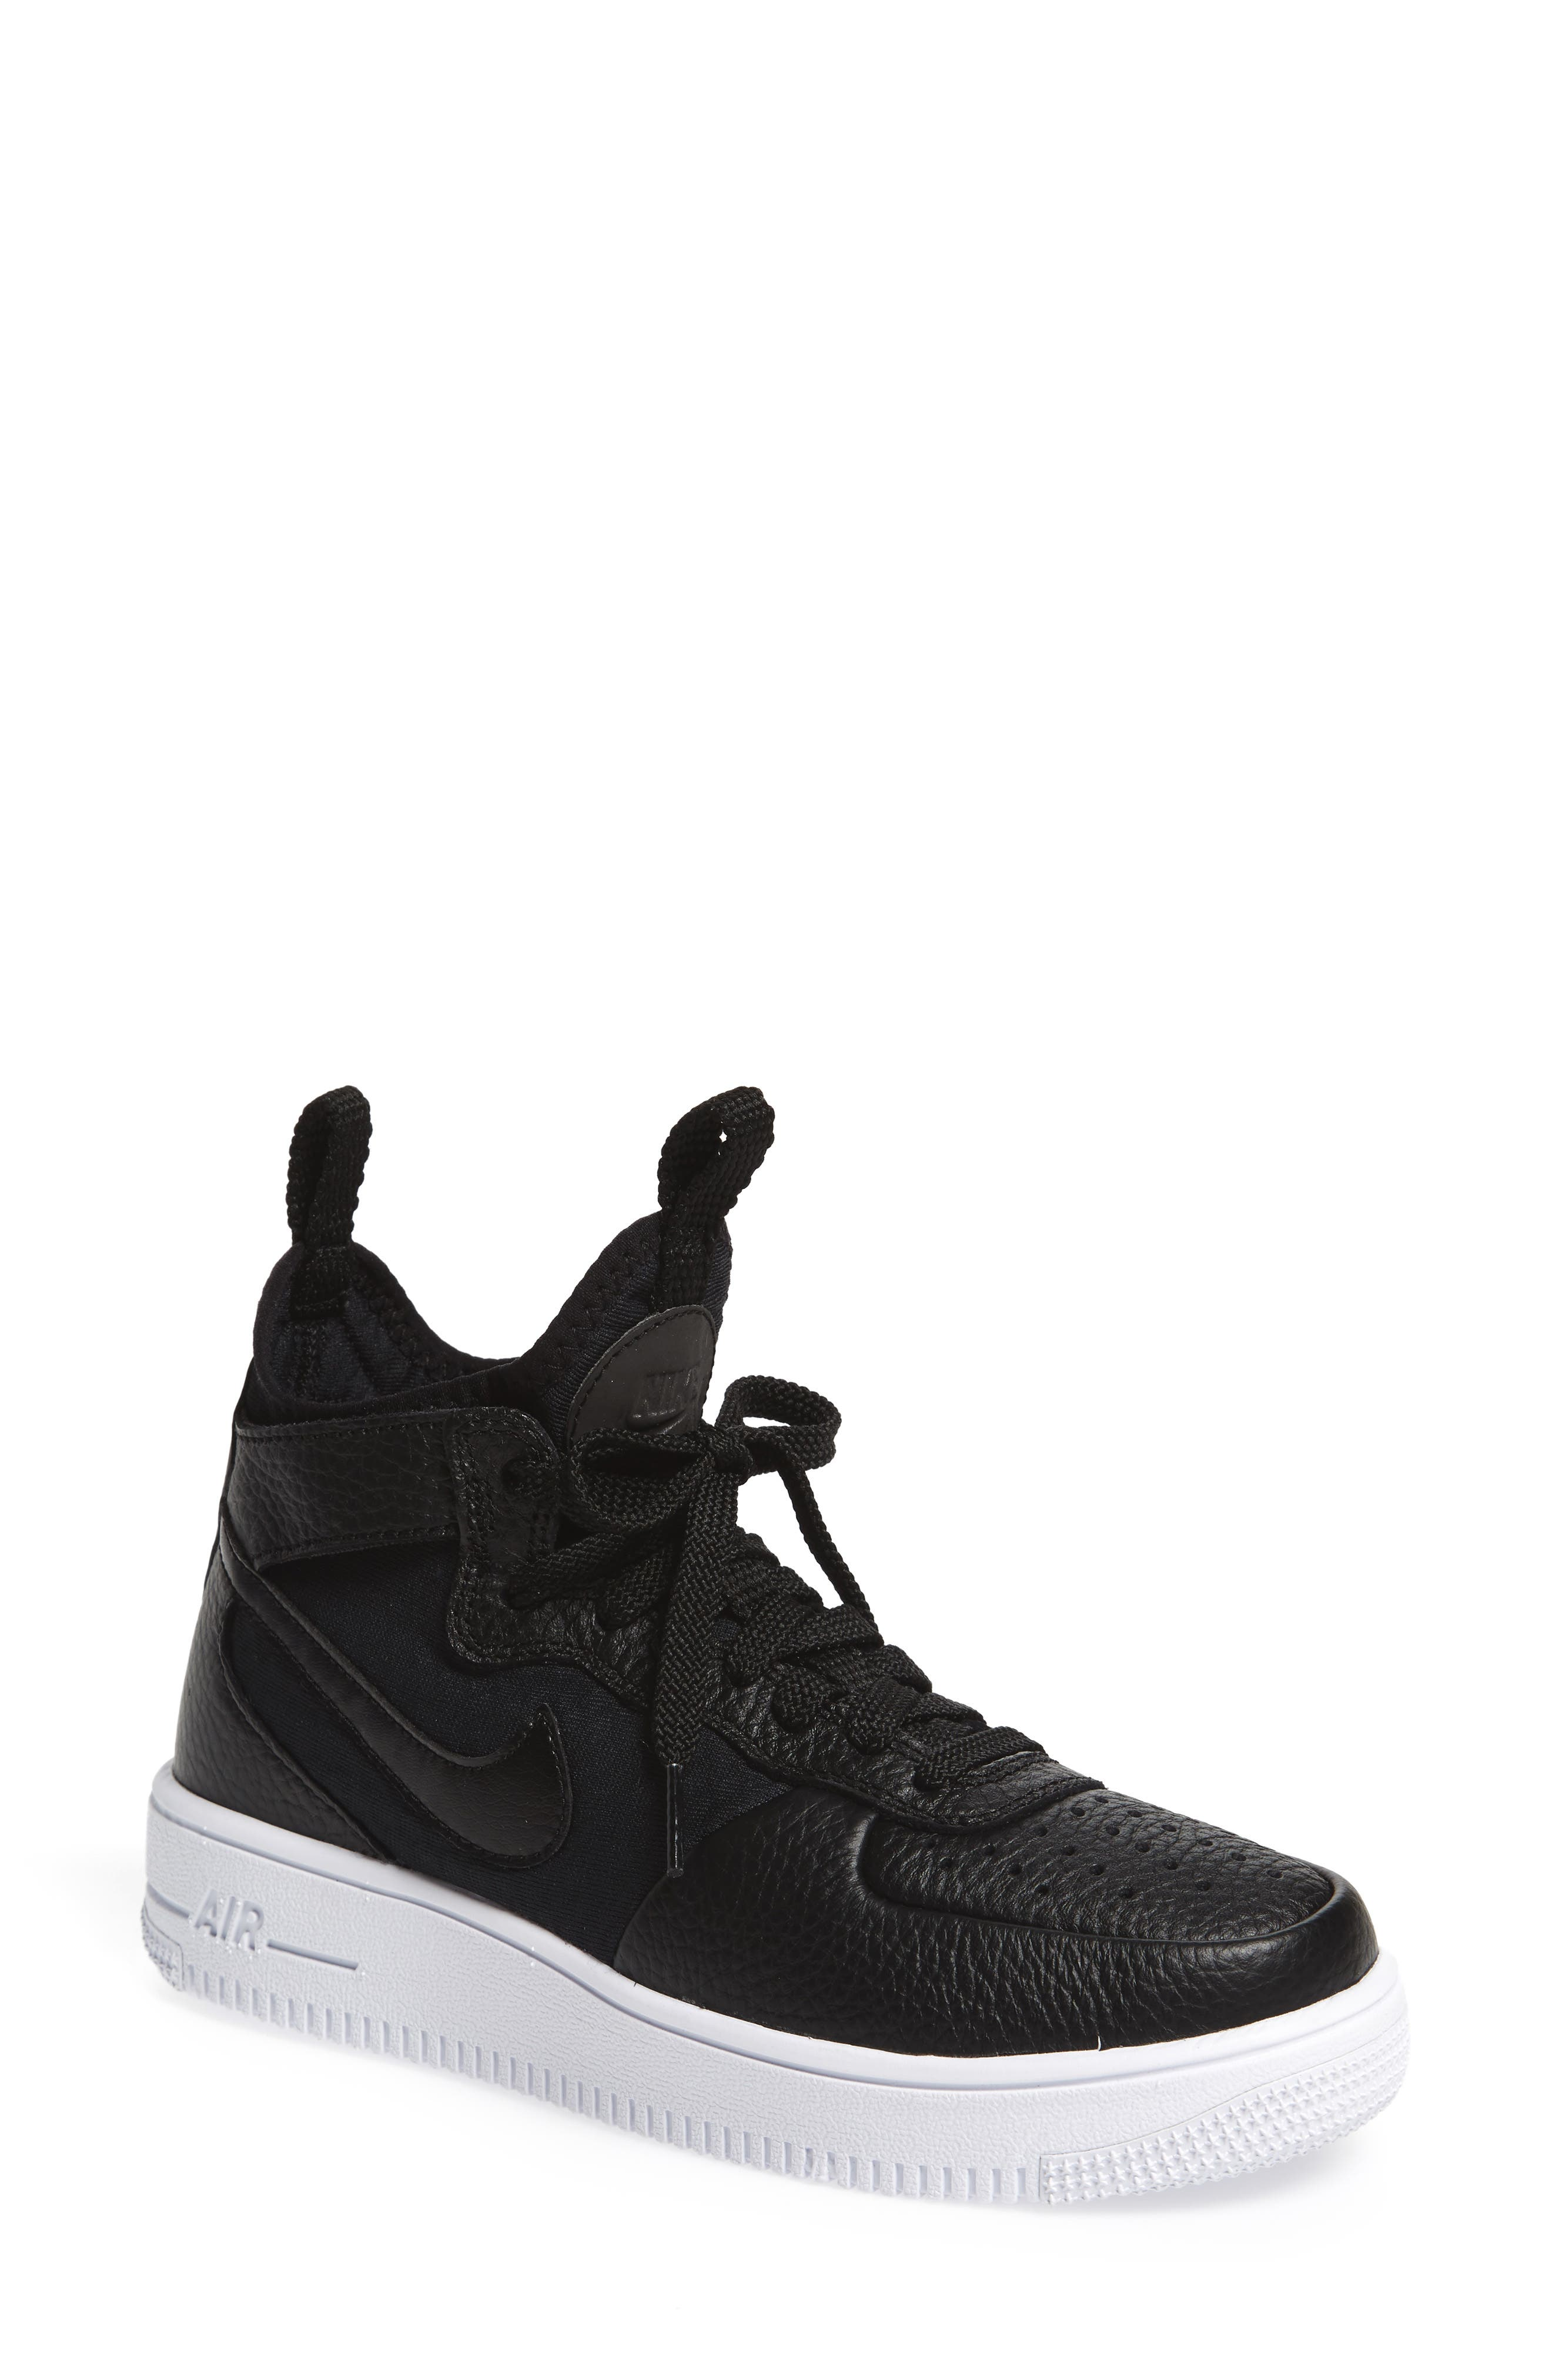 where can i buy nike air force 1 ultraforce mid particle